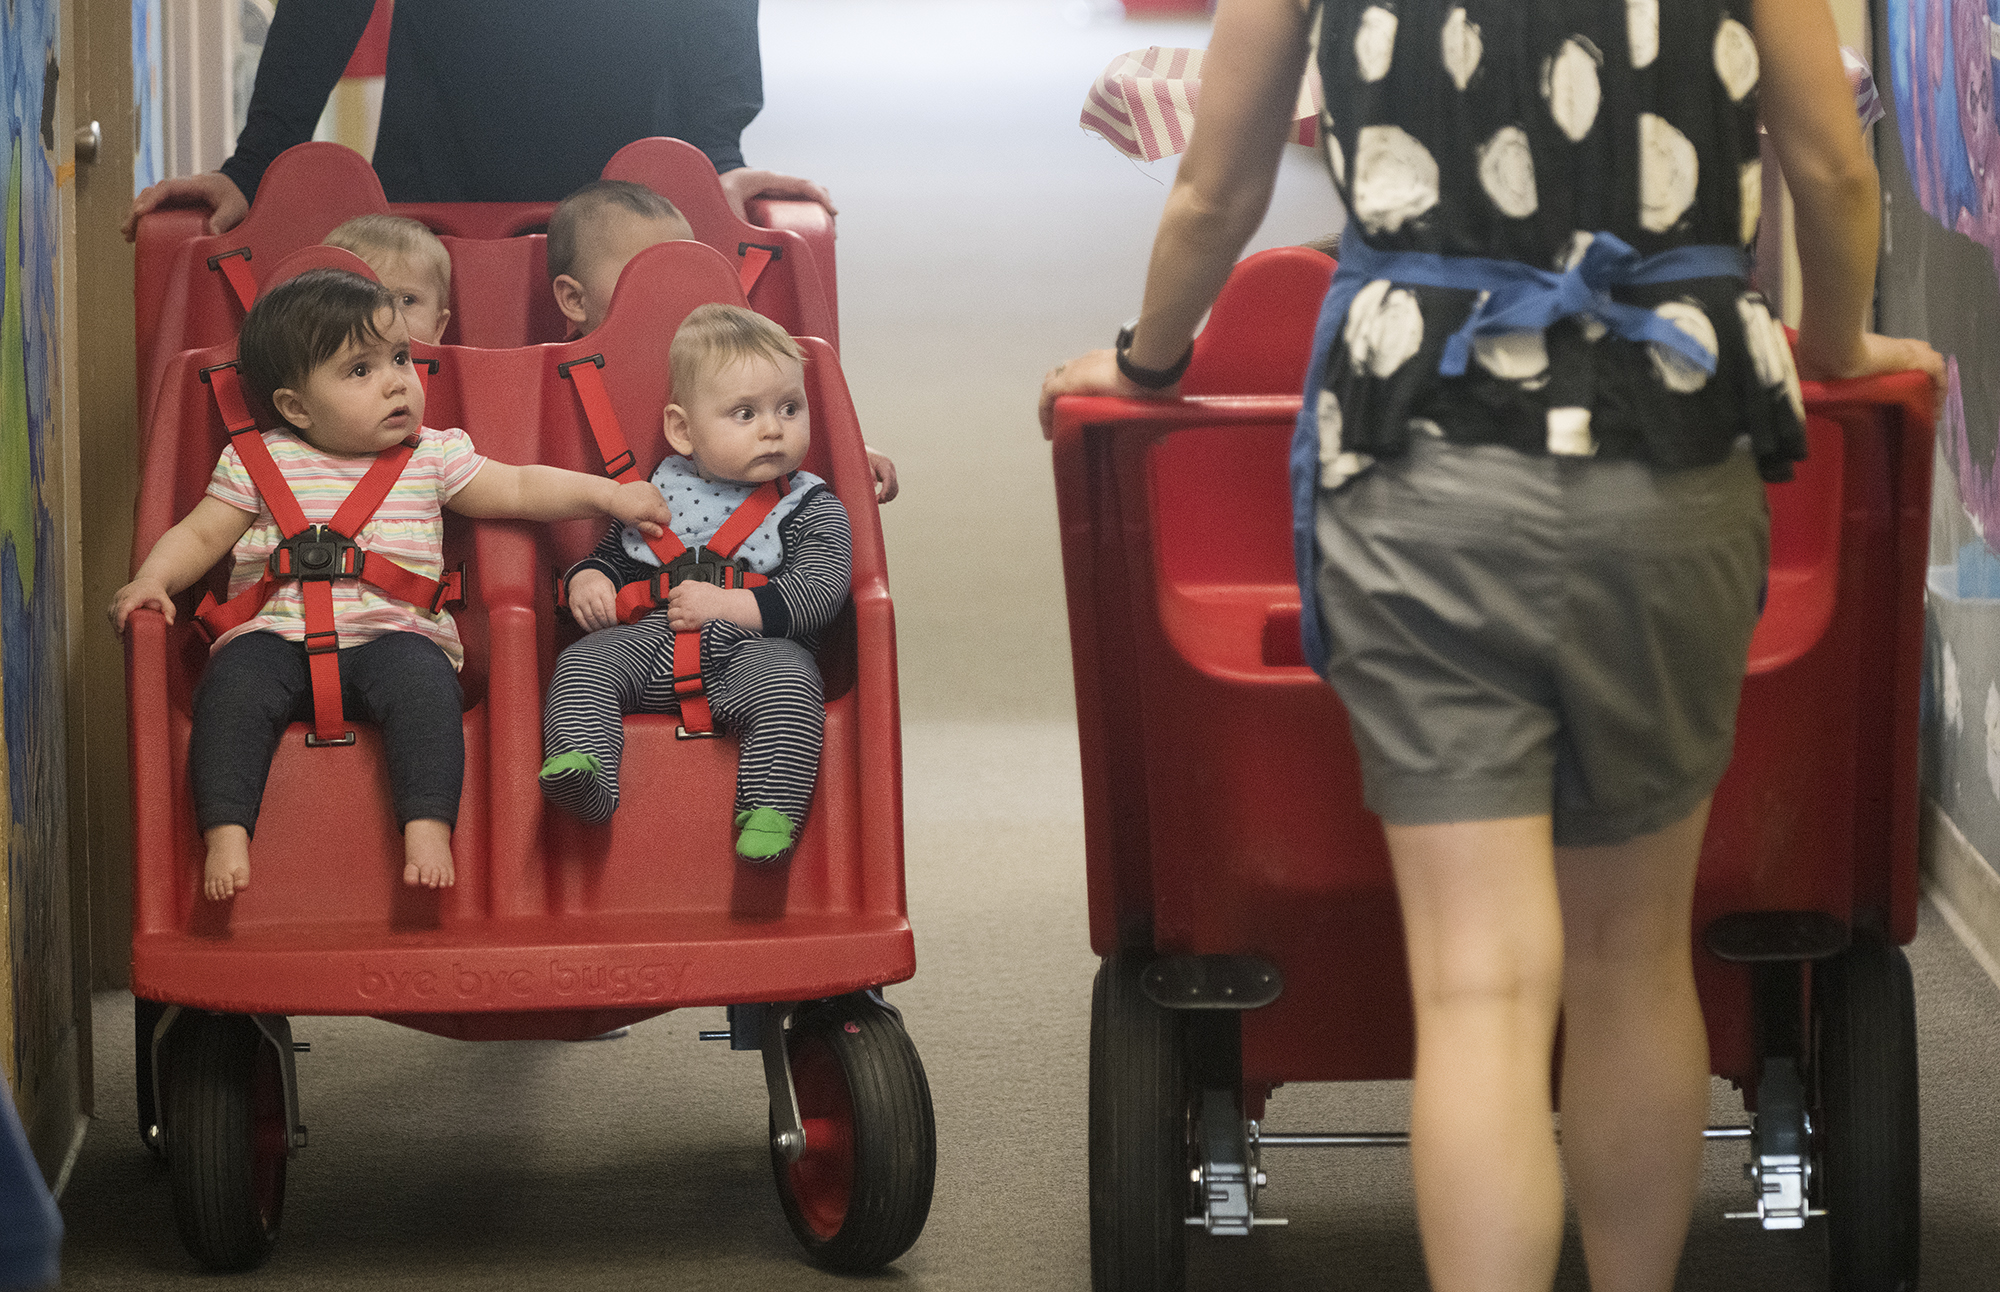 Children in buggies pass each other in the hall at Parkside Children's Learning Center in Bangor in June. (Kevin Bennett photo for Maine Public)